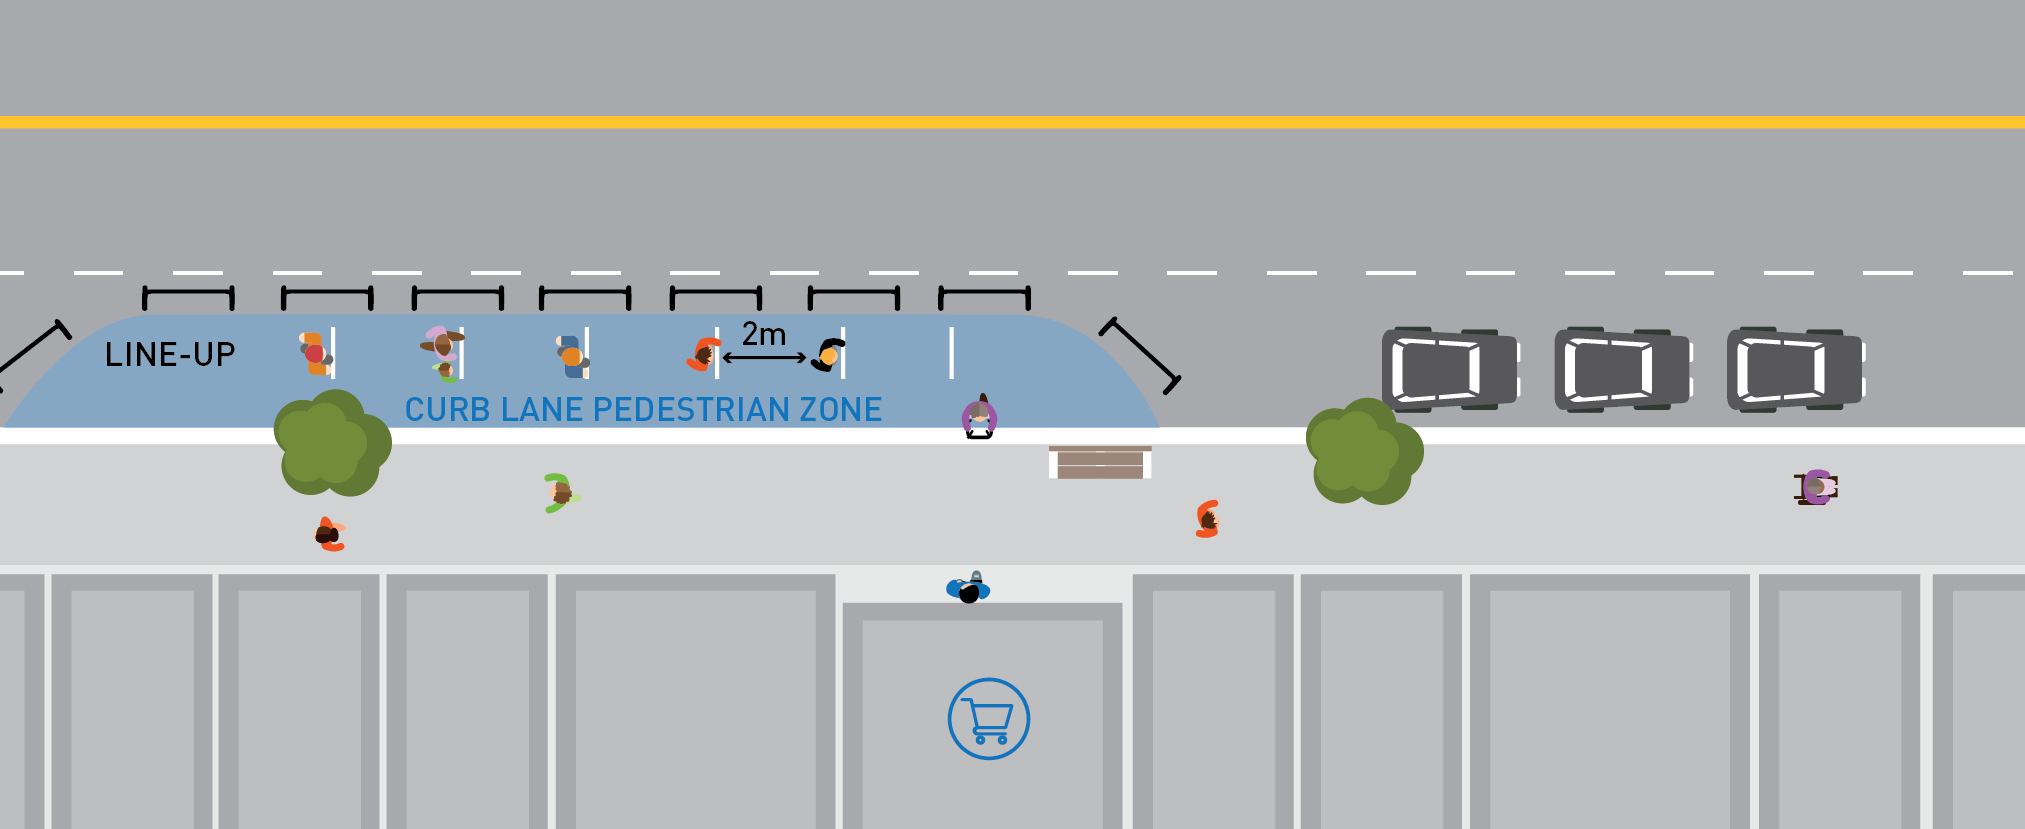 Illustration showing pedestrians lined up on the curb lane while maintaining 6 feet of distance while they wait to enter a grocery store. The curb lane is surrounded by barriers to protect the pedestrians lined up from live traffic.